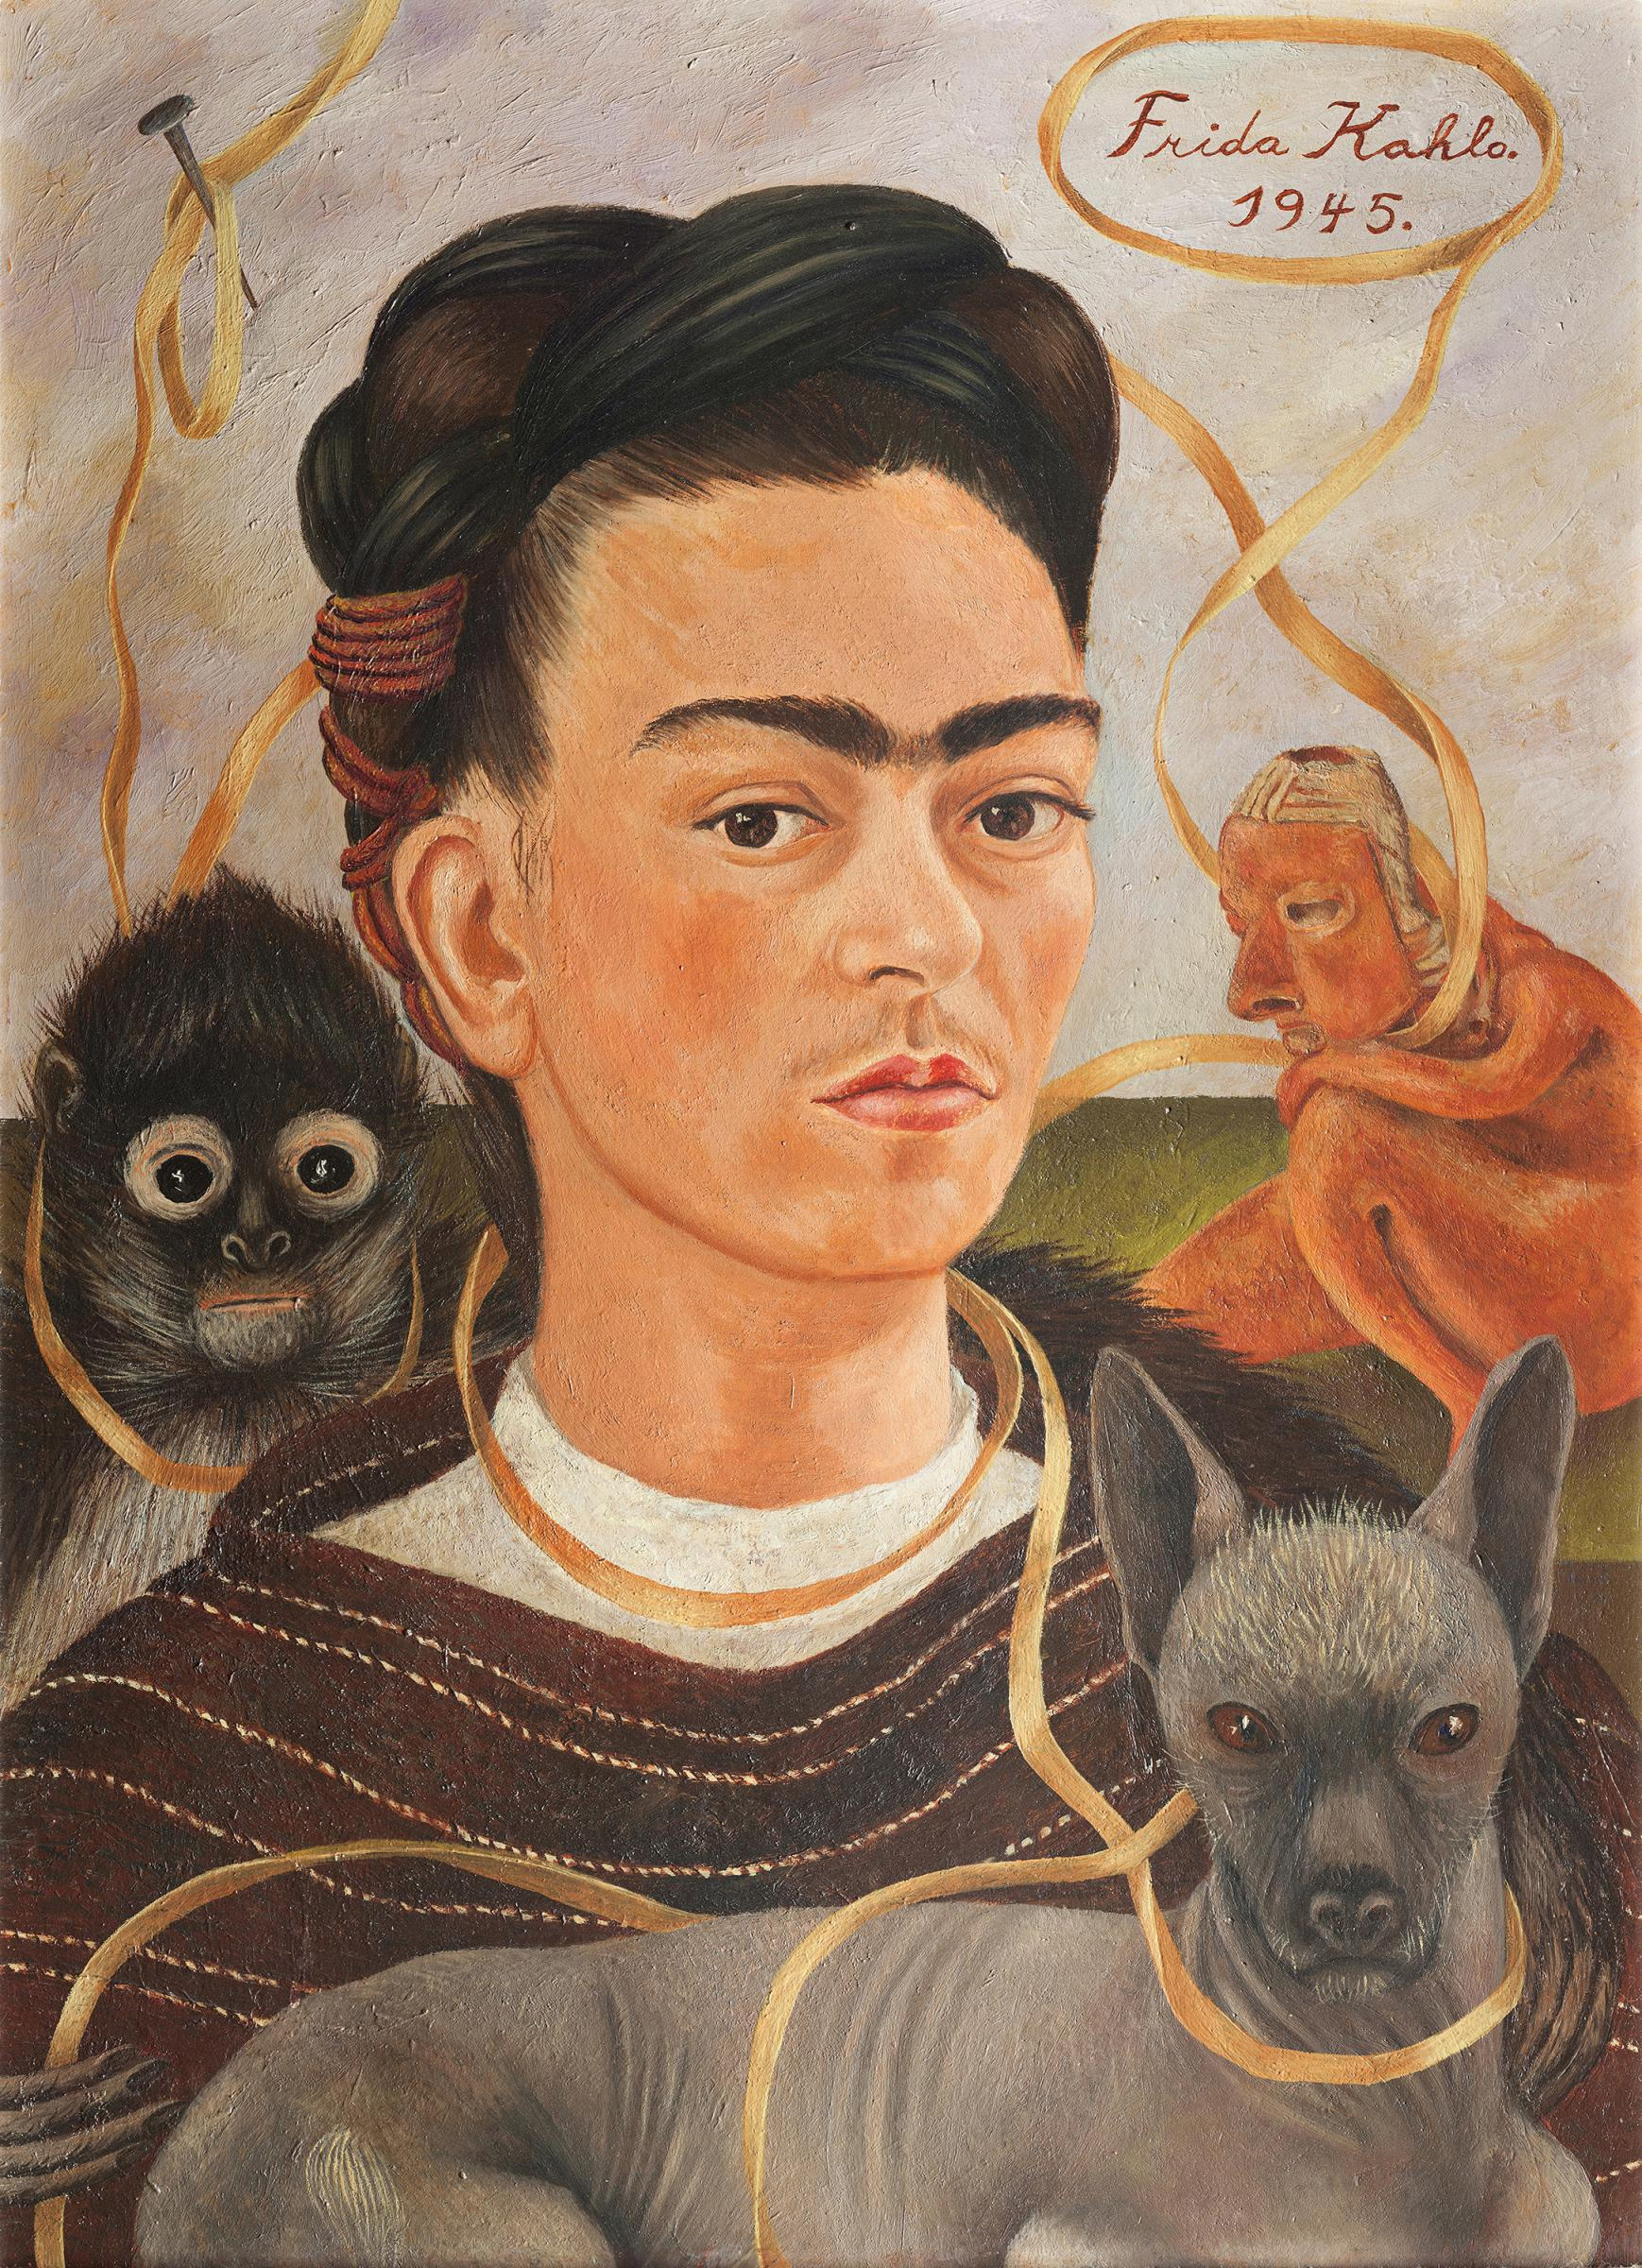 Frida Kahlo Drents Museum Assen - exhibitions in The Netherlands 2020